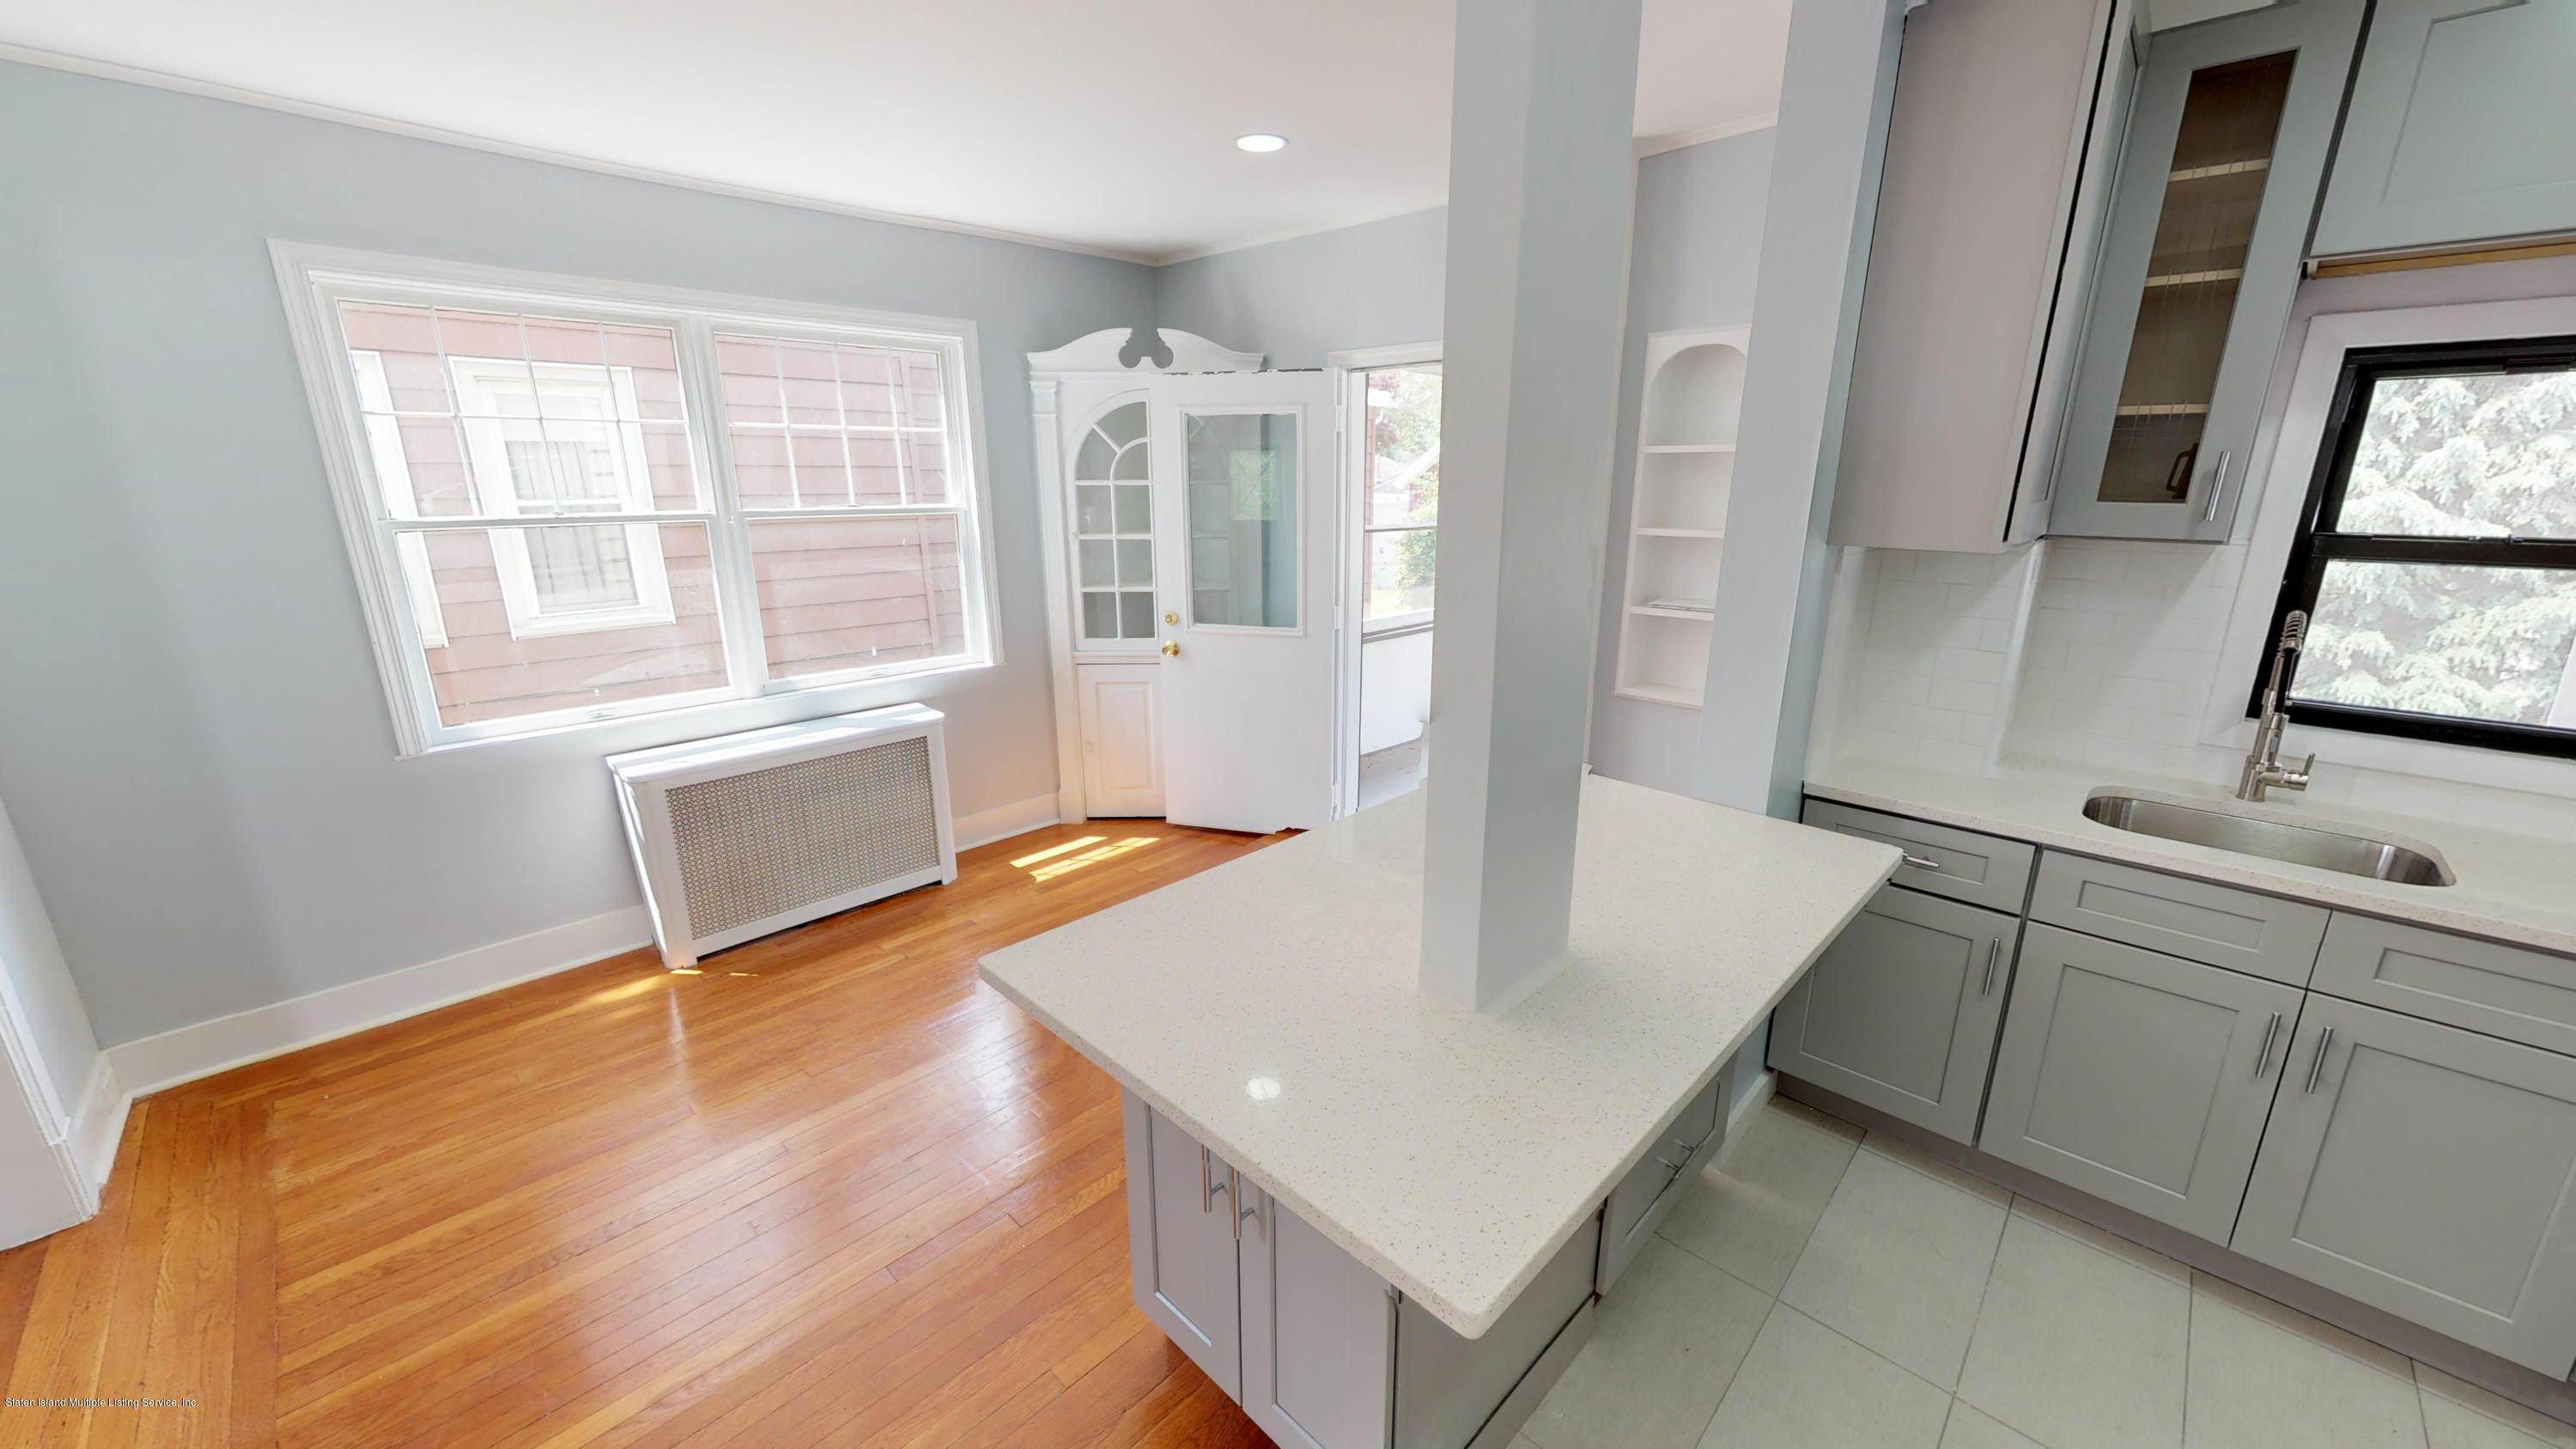 Single Family - Detached 54 Quinlan Avenue  Staten Island, NY 10314, MLS-1129378-8